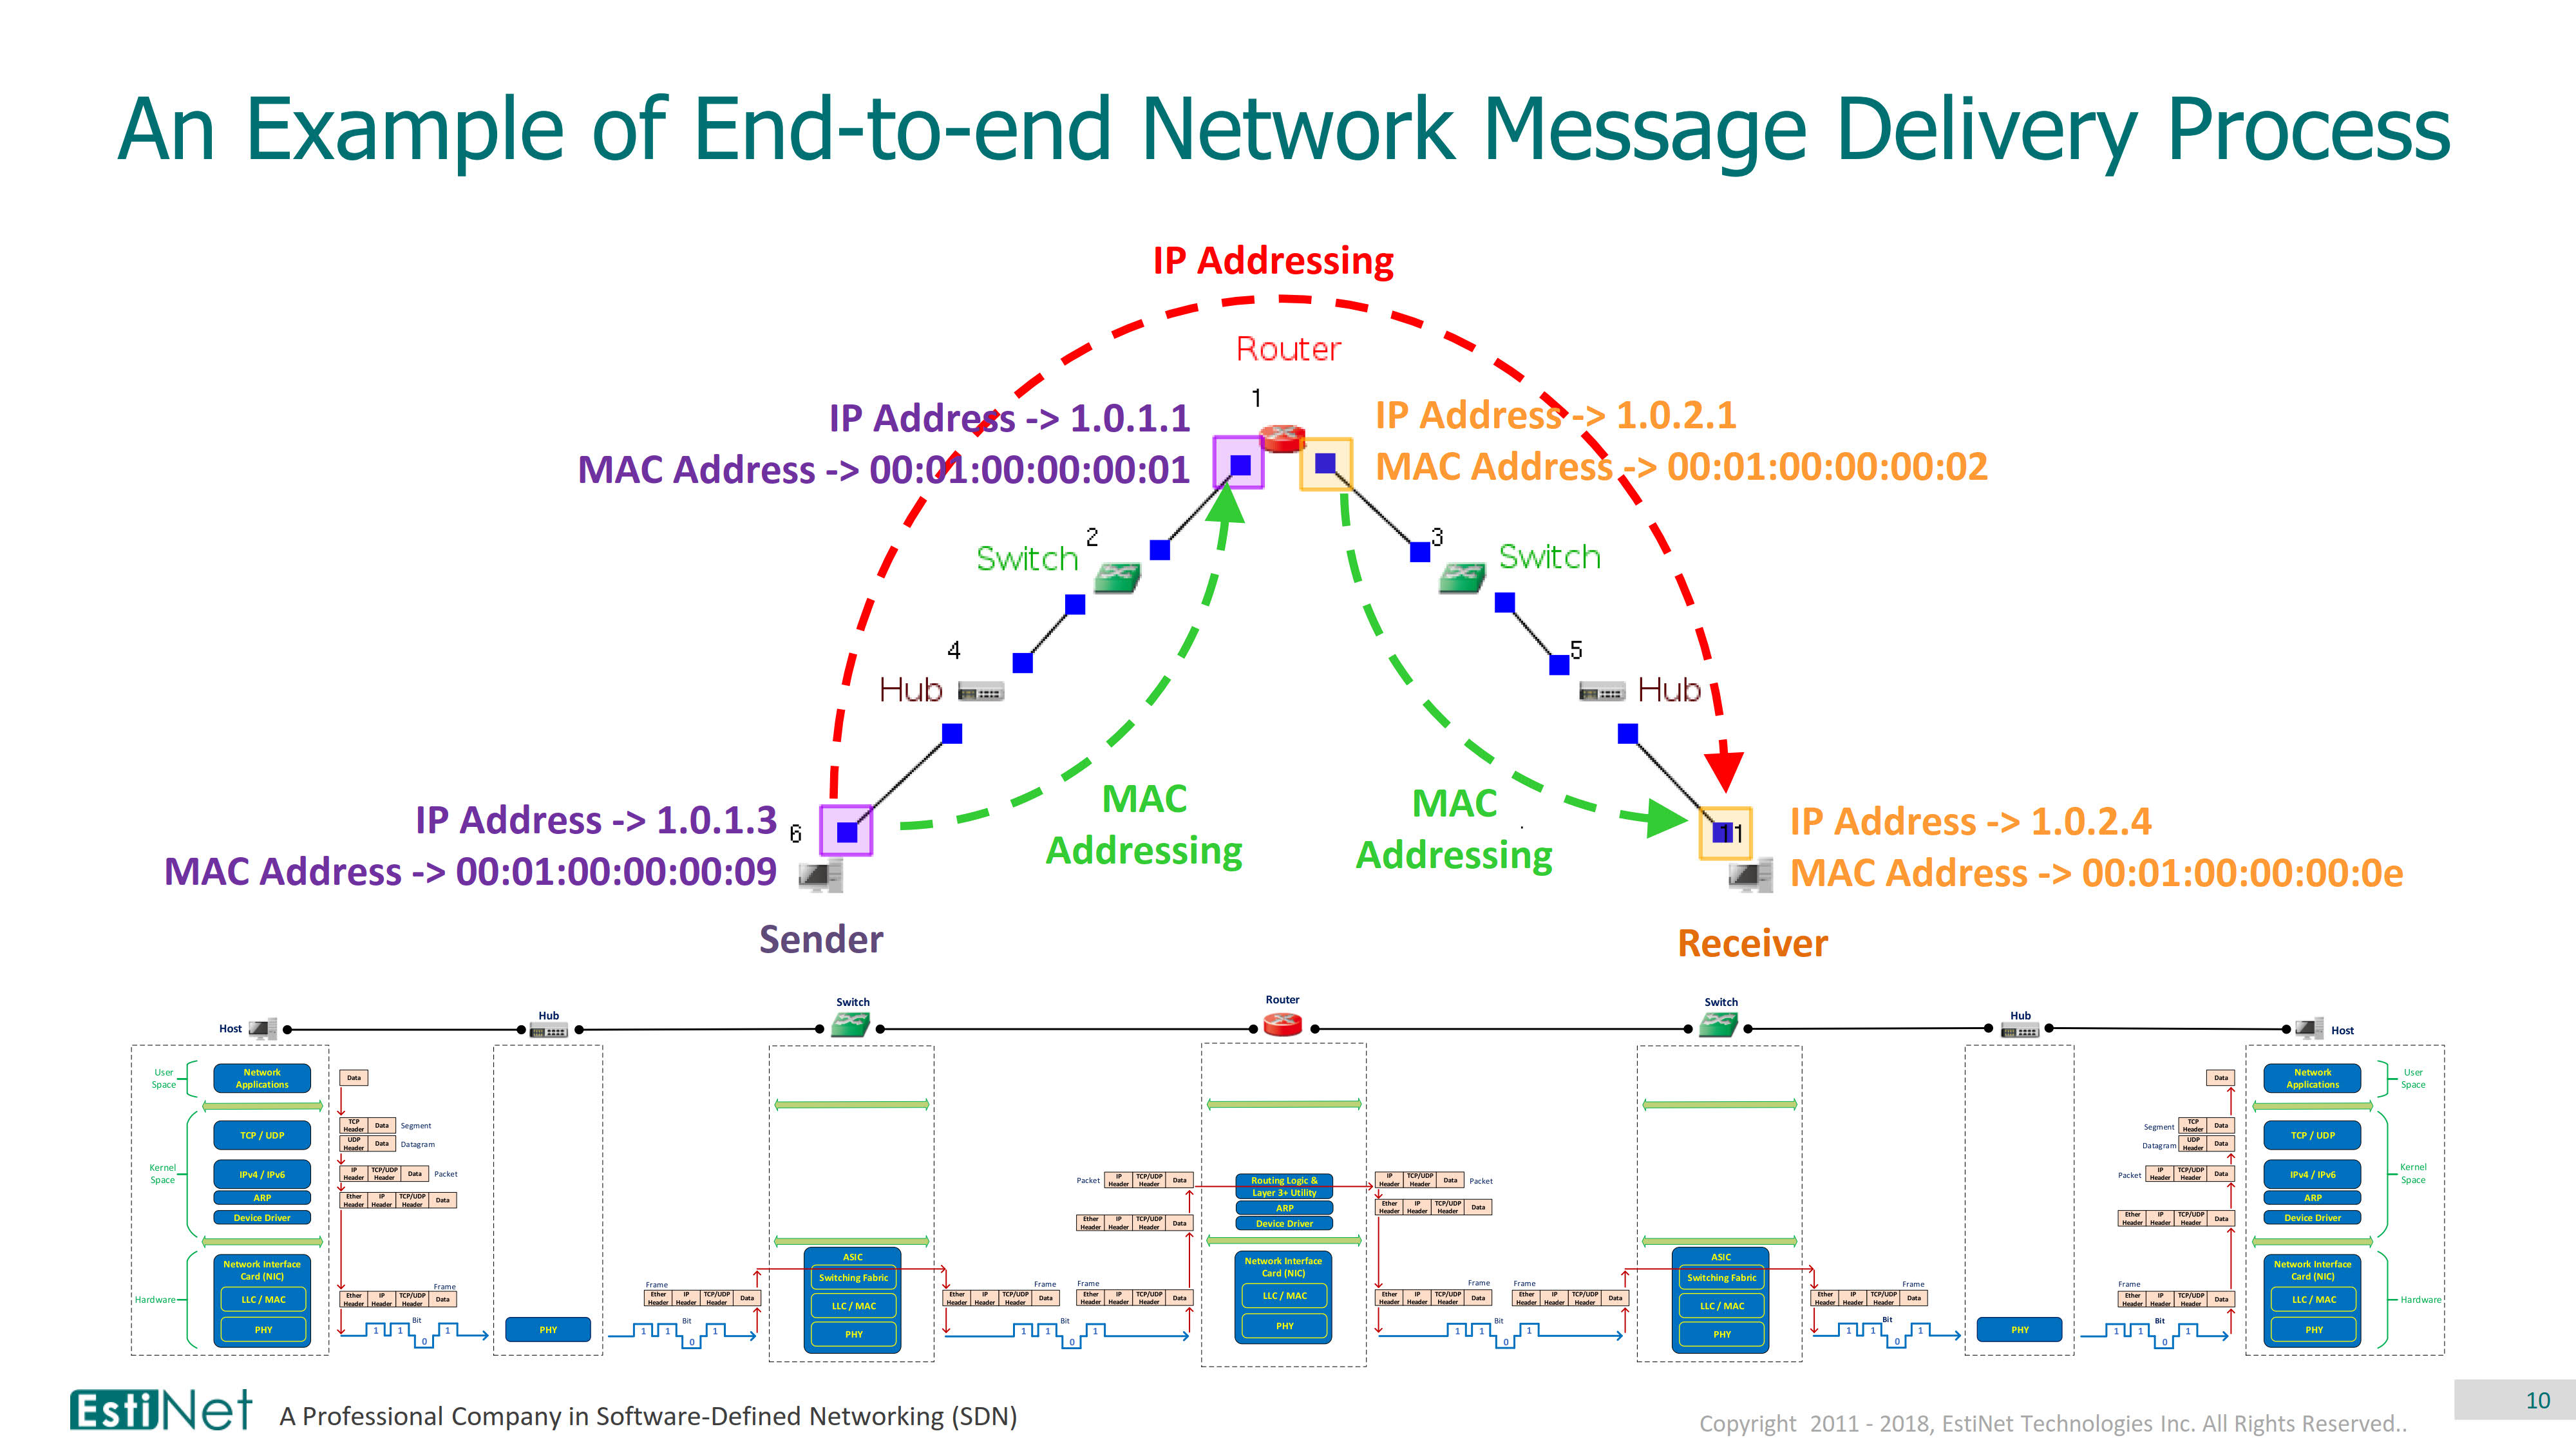 Network Messages' Encapsulation, Addressing and End-to-end Delivery Process_10